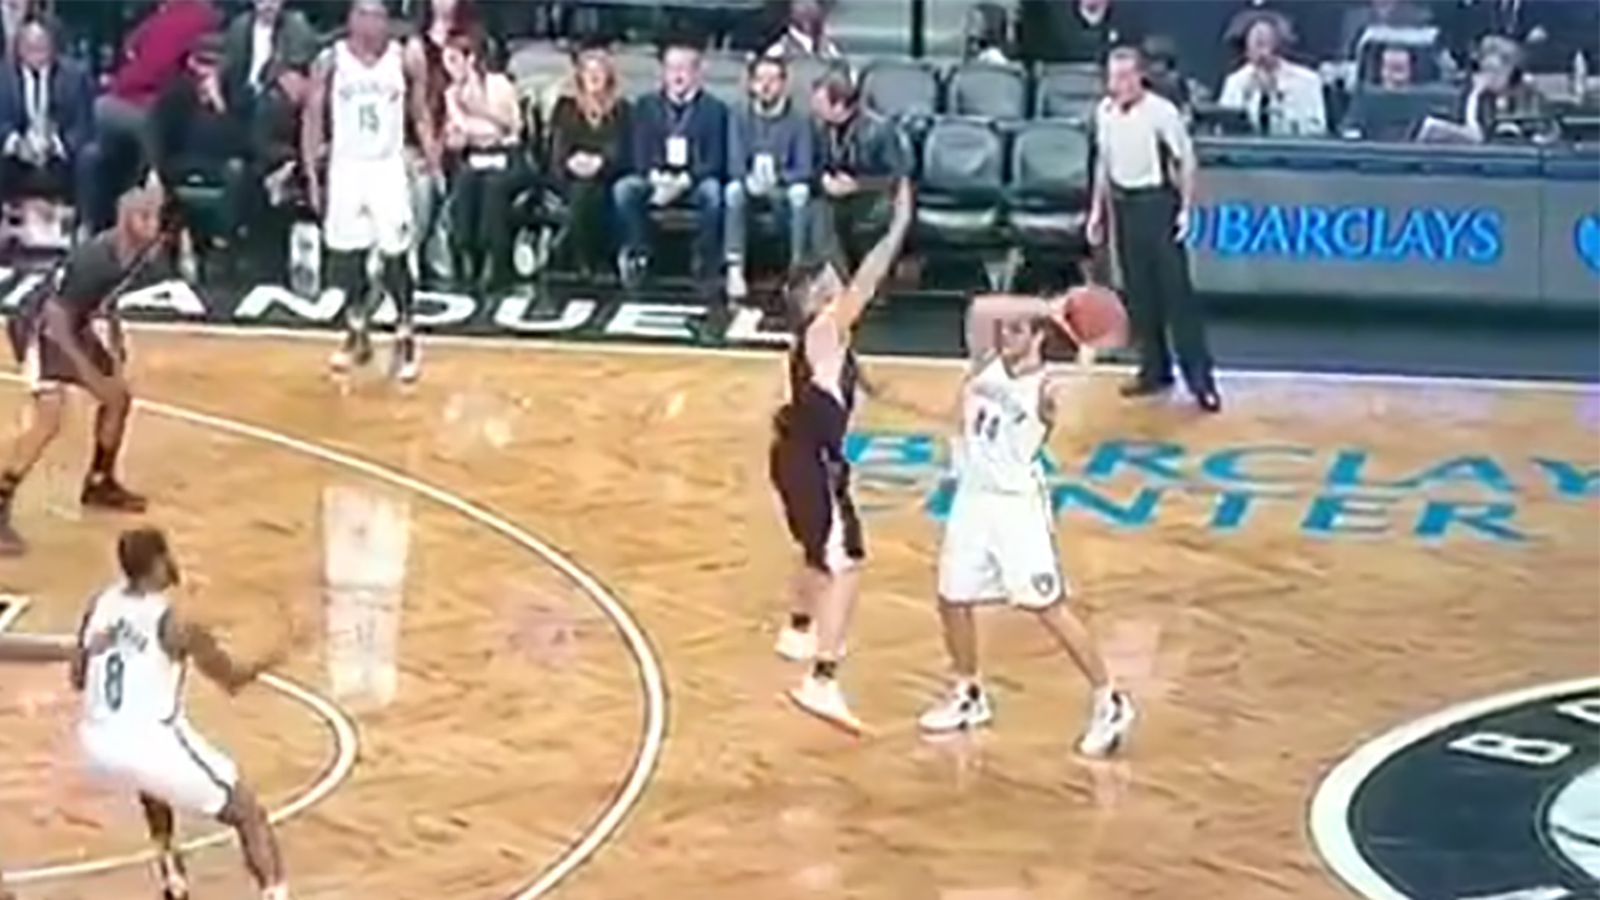 NBA ref misses the most obvious double dribble despite ...